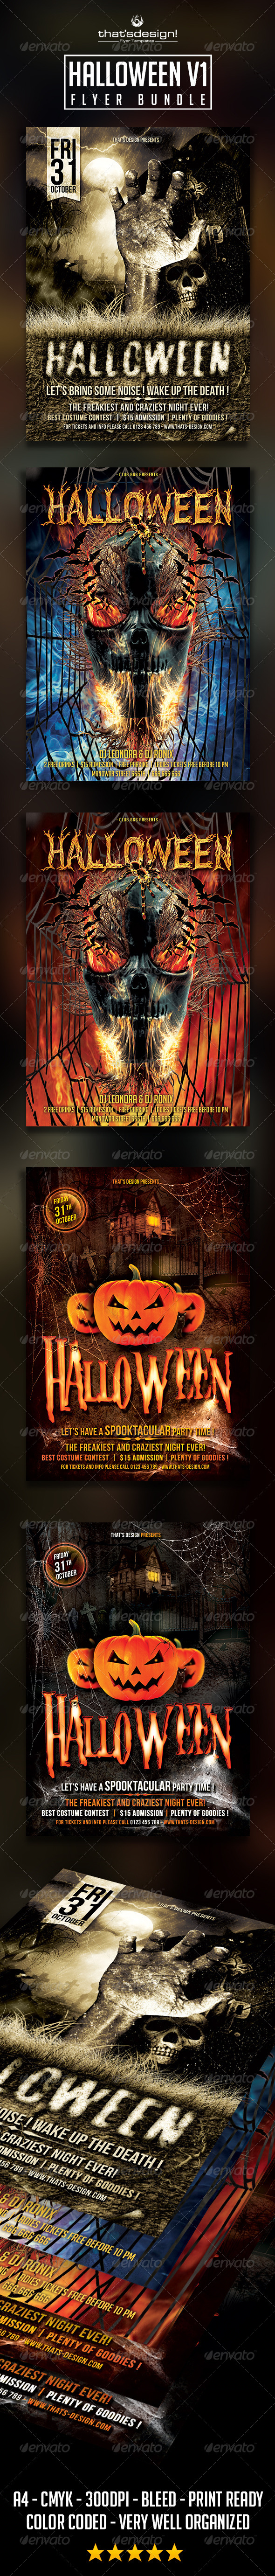 GraphicRiver Halloween Flyer Bundle V1 8772016